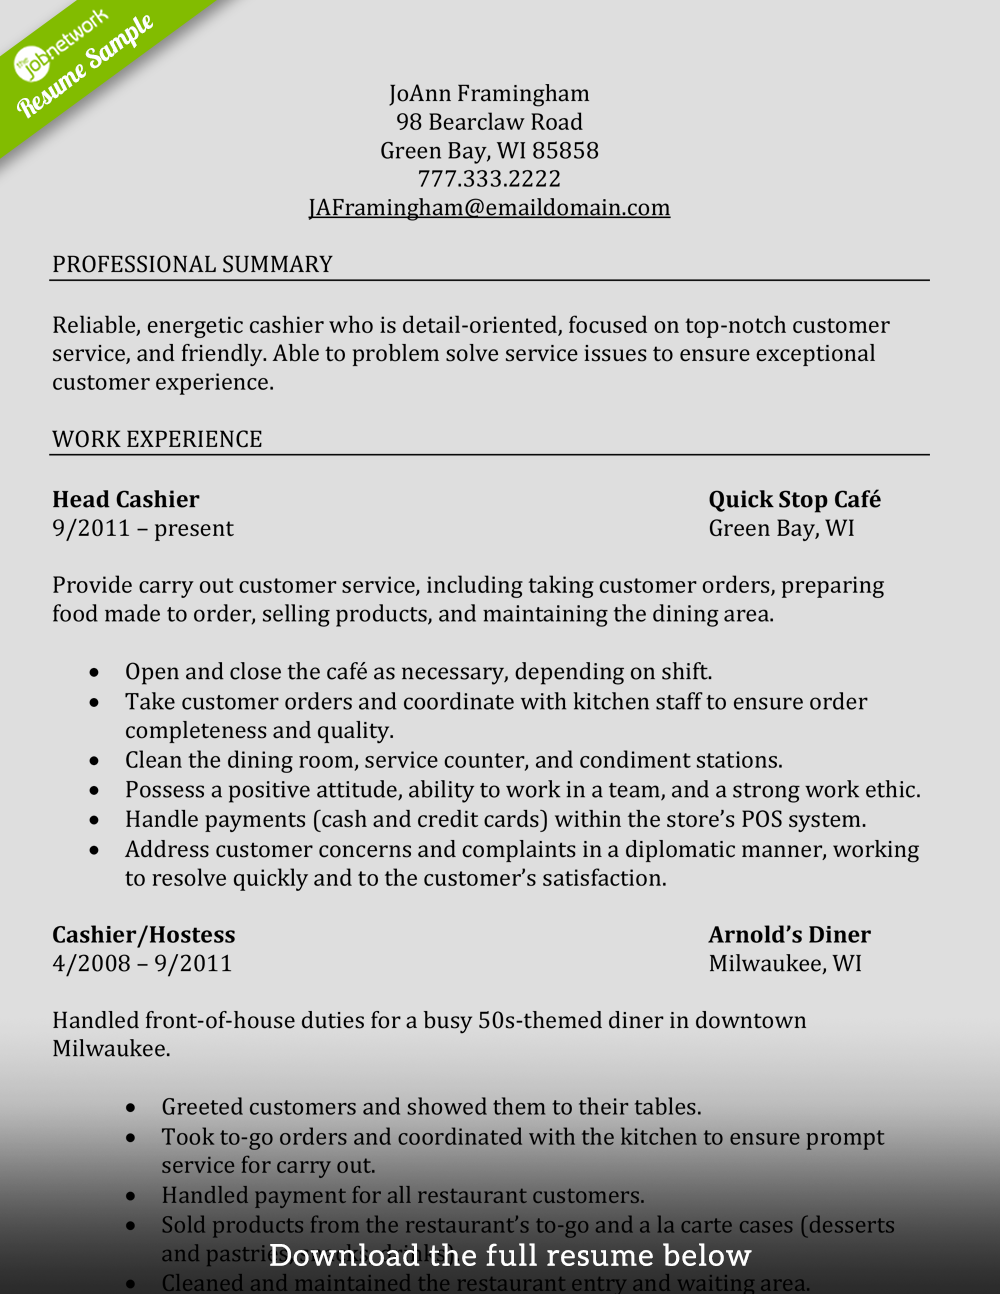 Cashier Resume Experienced Restaurant  How To Make Your Resume Look Good